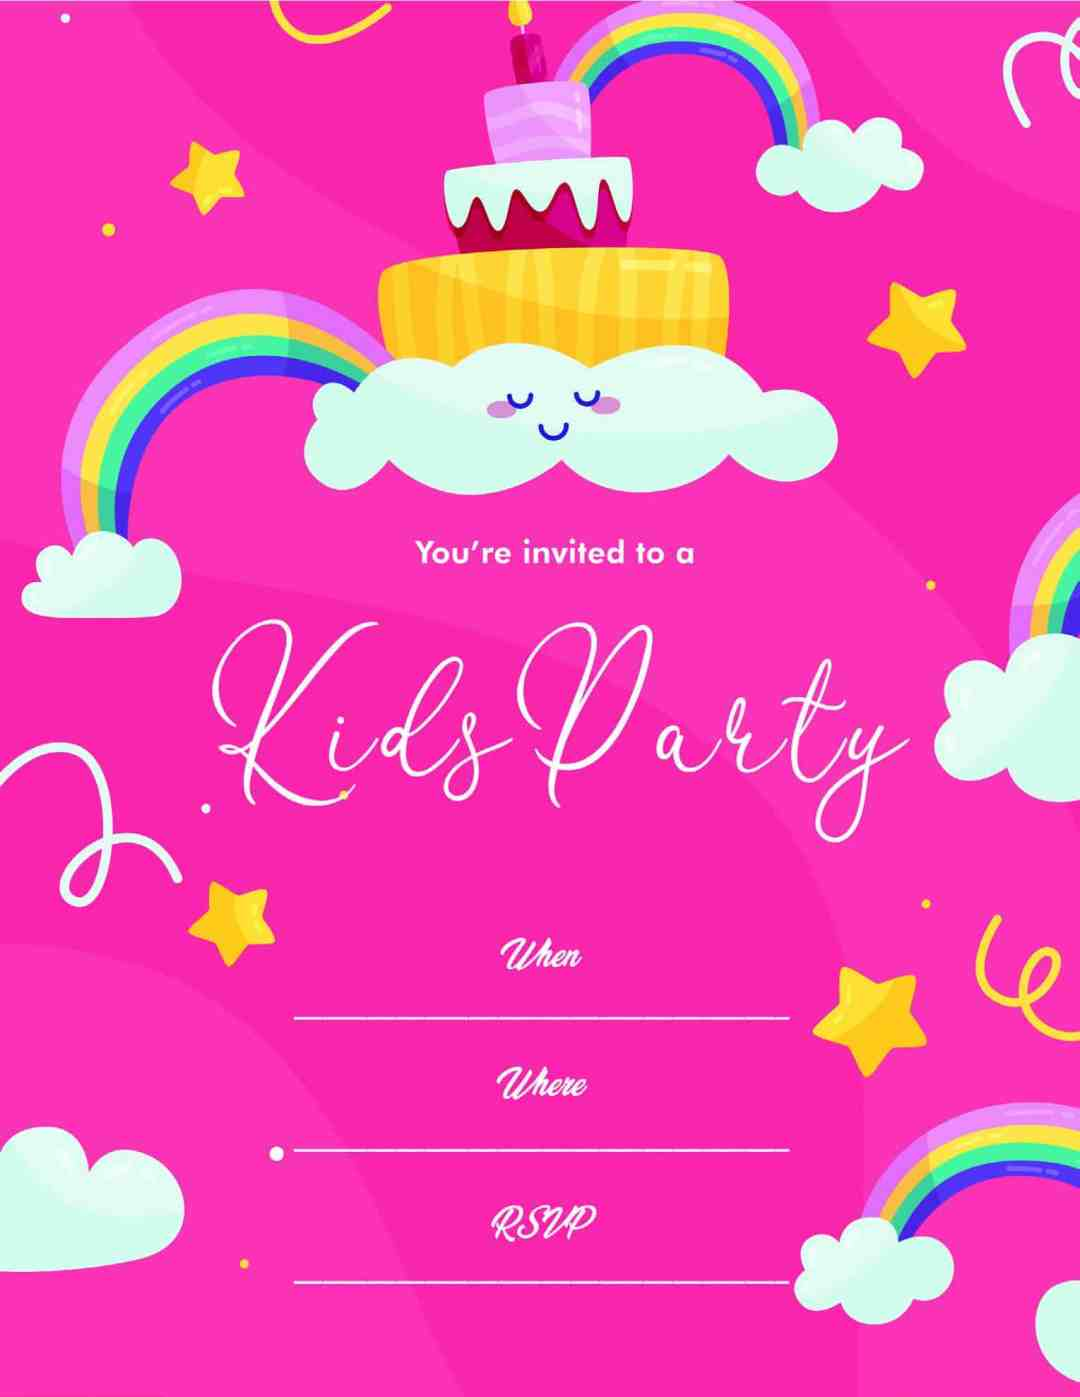 Kids Party - Rainbow Stars Clouds Pink - All Free Invitation